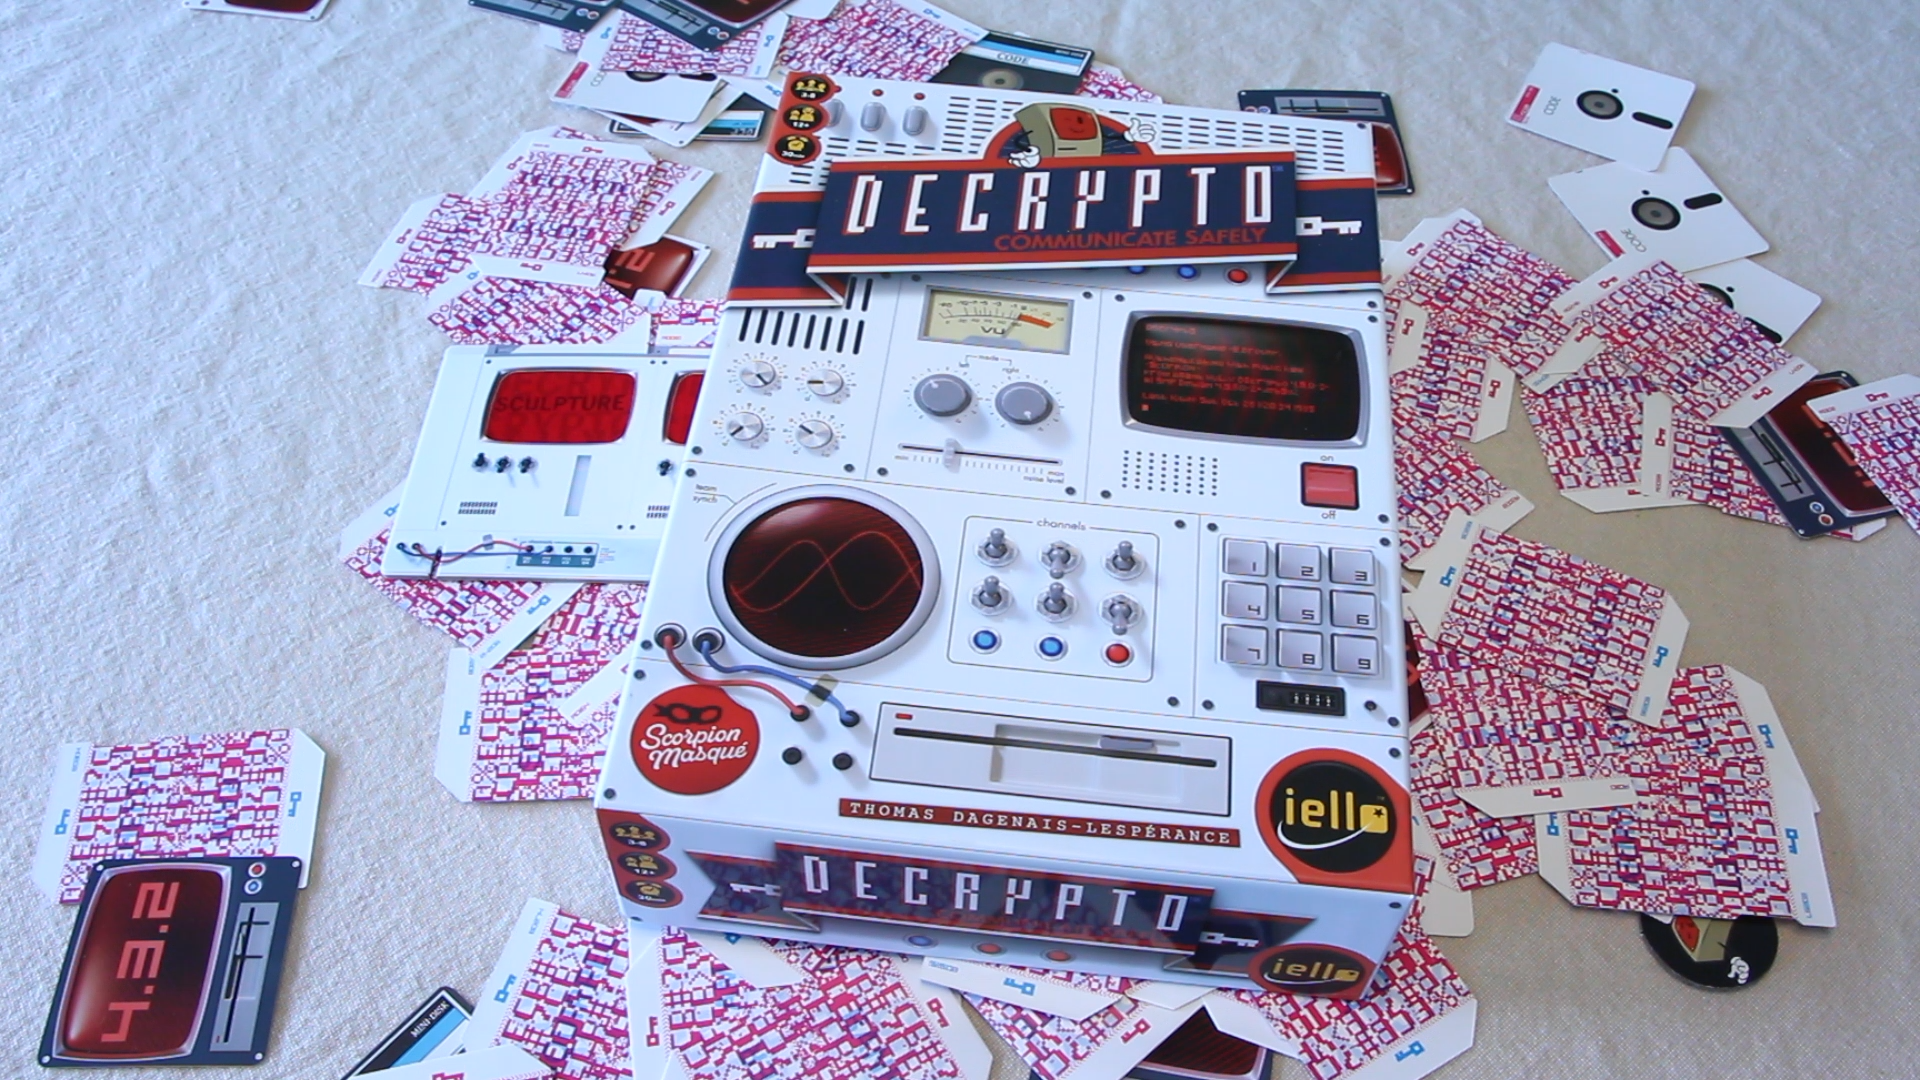 The box for the board game Decrypto sits at top a pile of the games cards and components.